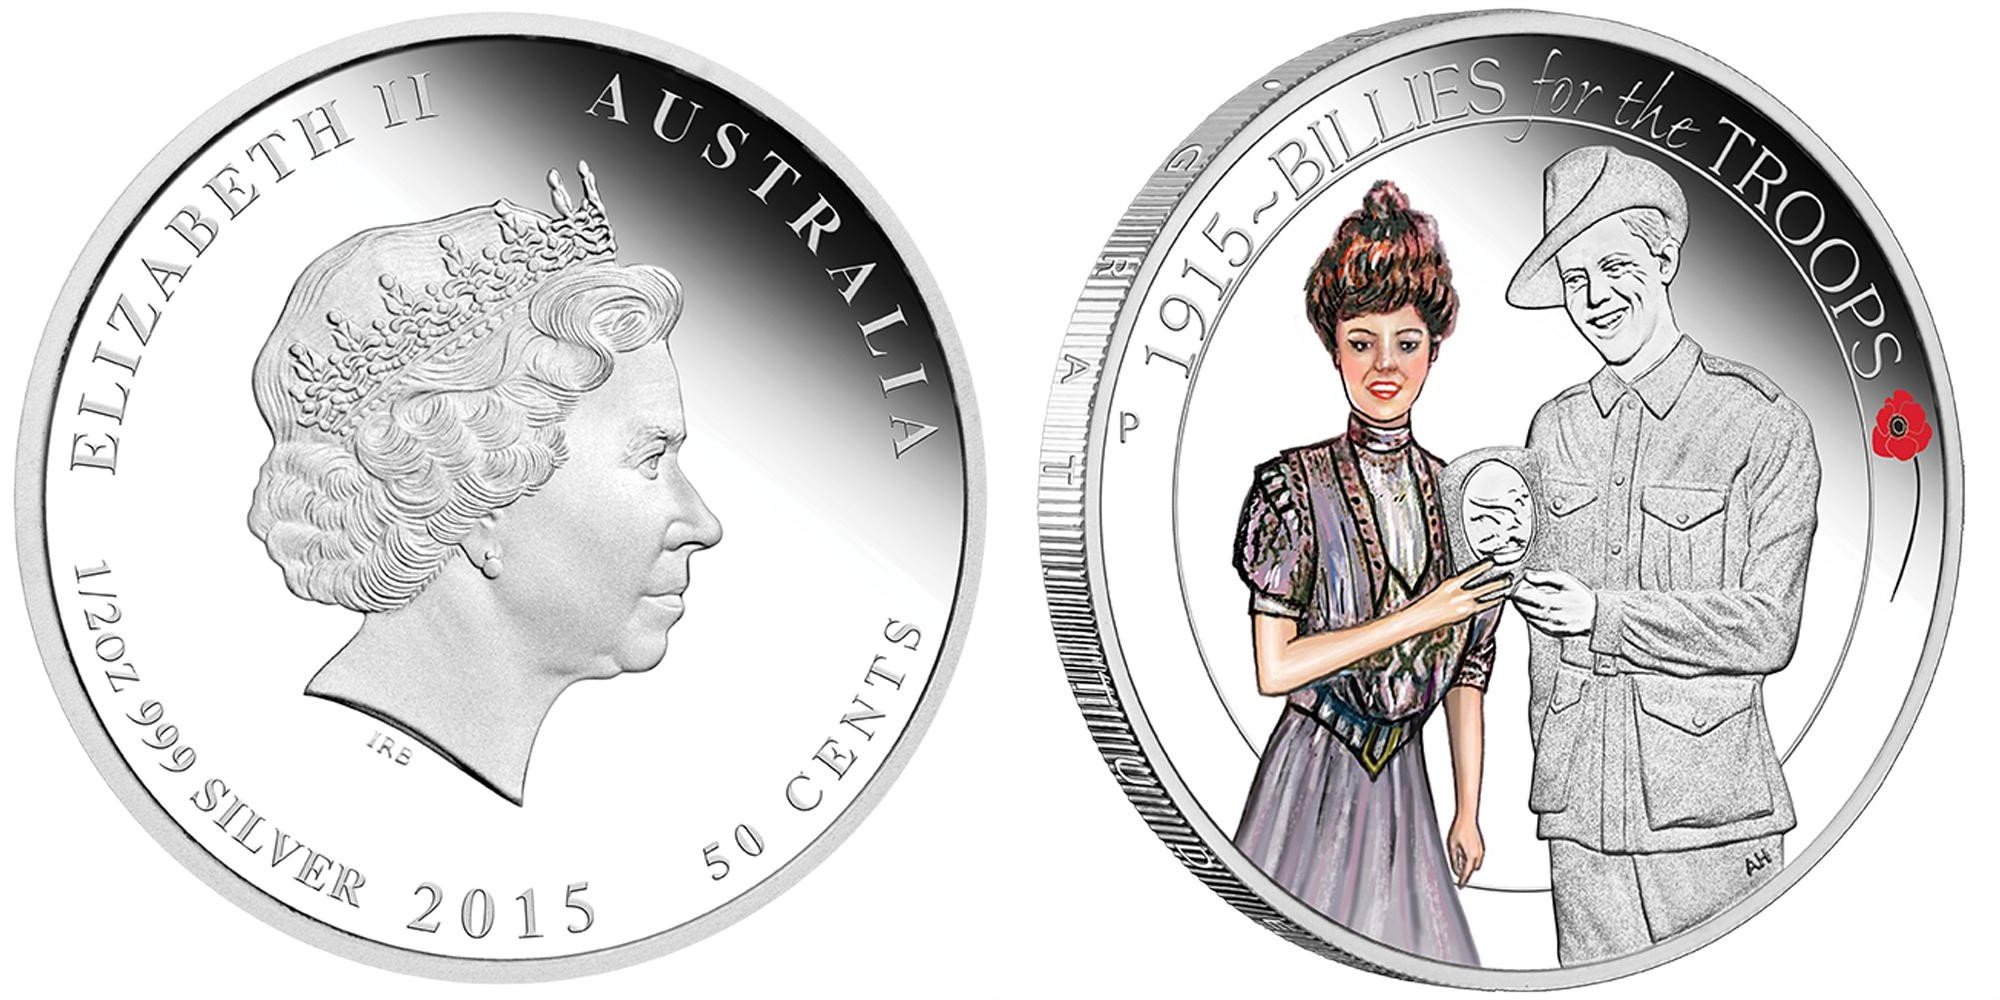 australie 2015 anzac spirit billies for the troops.jpg